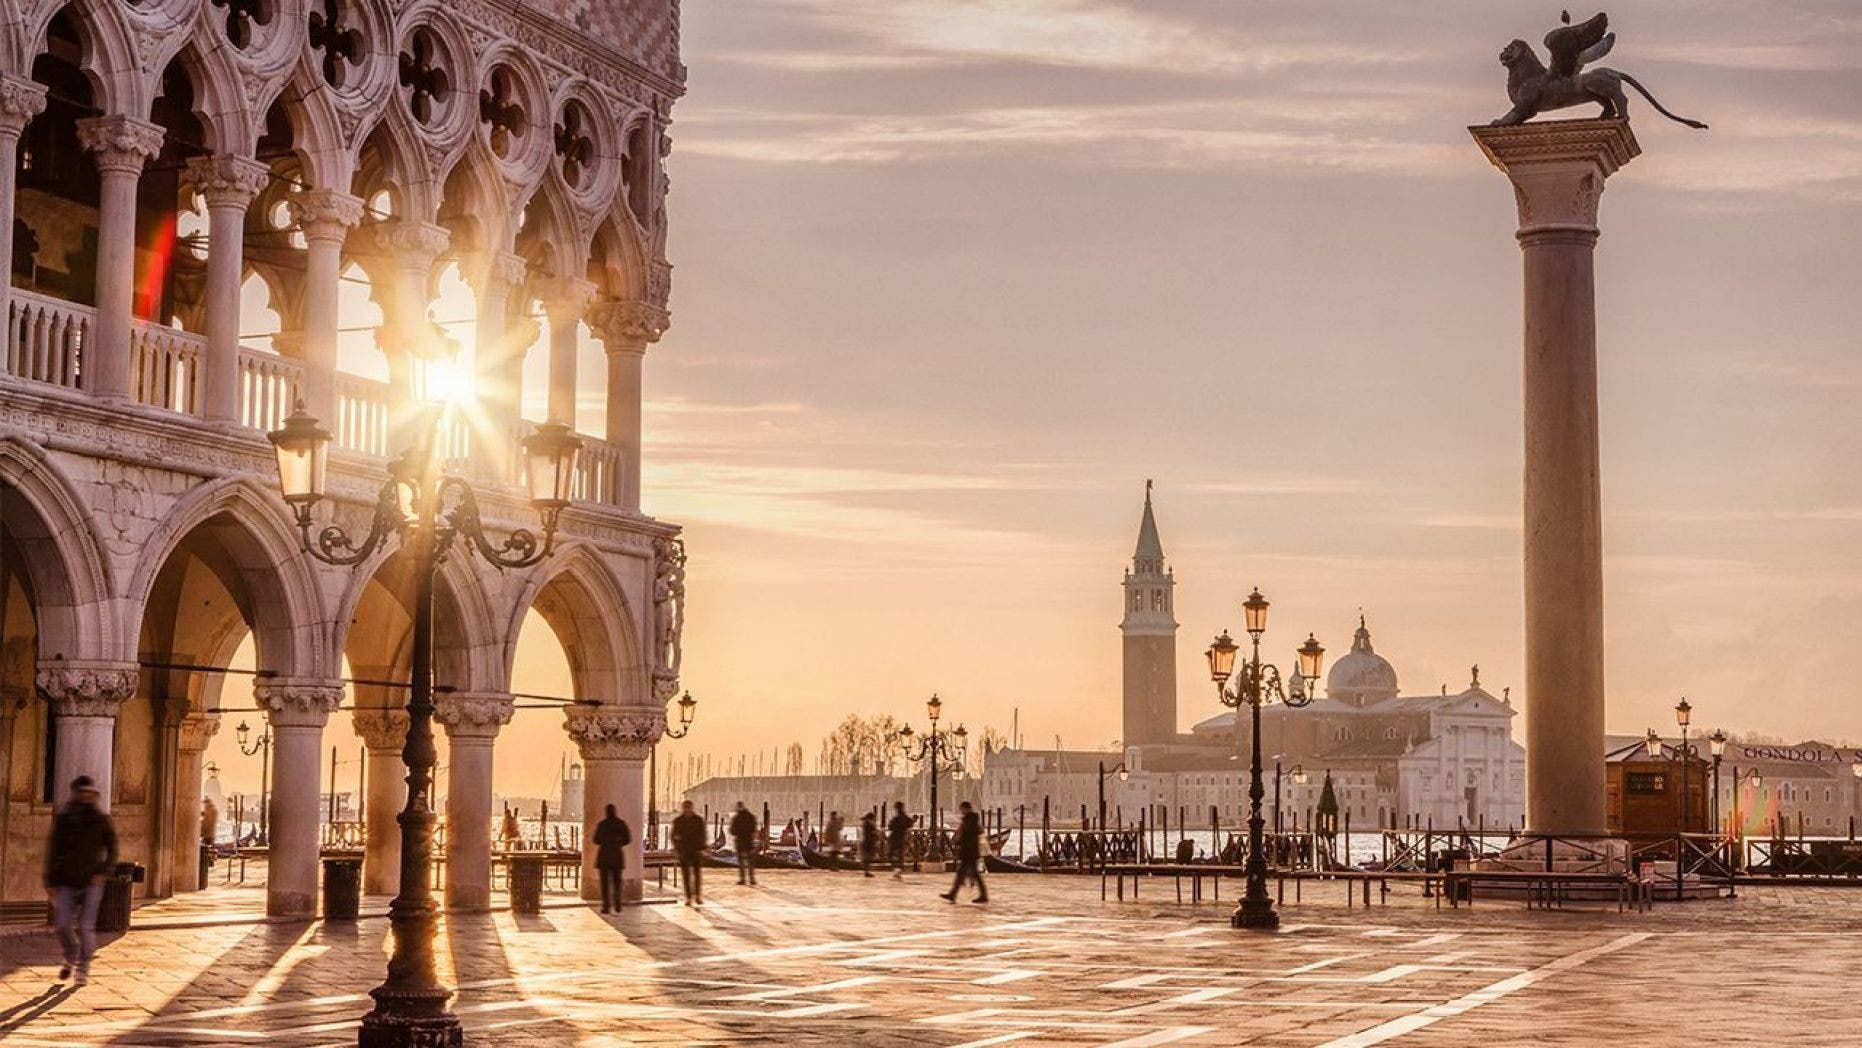 This week, the city of Venice approved a 3 Euro per person fee for all day-trippers. The new day-trip entrance fee will go toward maintaining the World Heritage site.